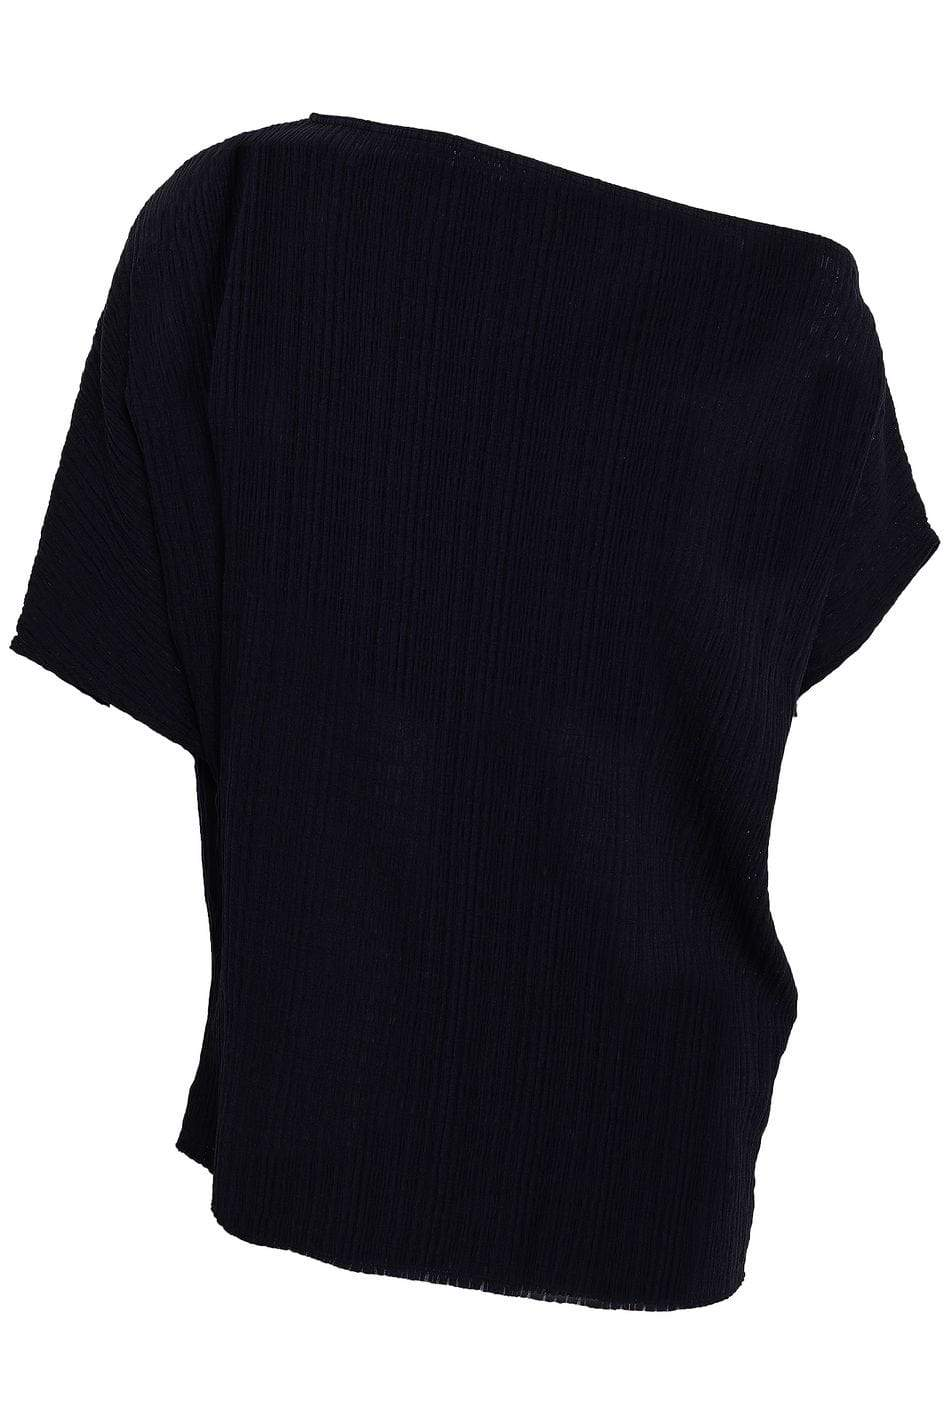 Wolford Ready To Wear By Wolford Wolford Navy Bondi Top izzi-of-baslow